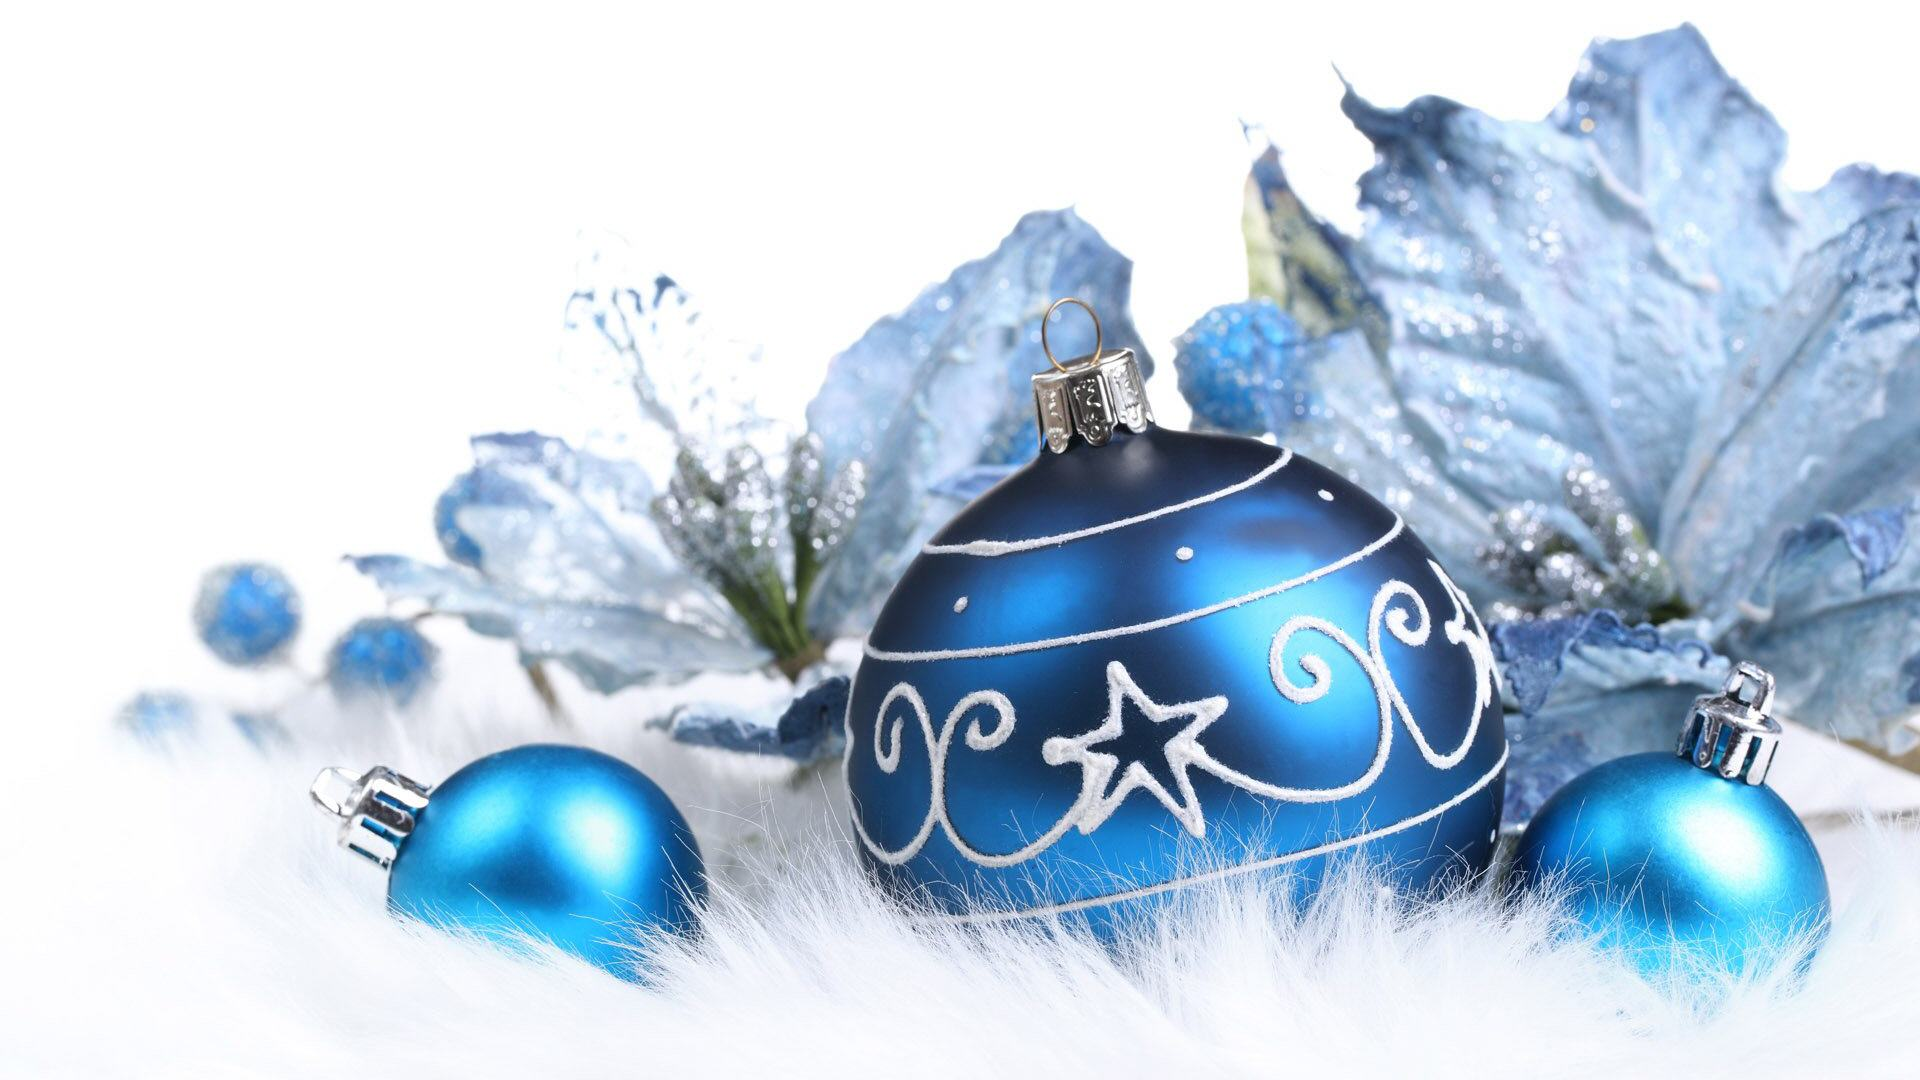 Christmas decorations wallpaper wallpaper Blue Christmas decorations 1920x1080